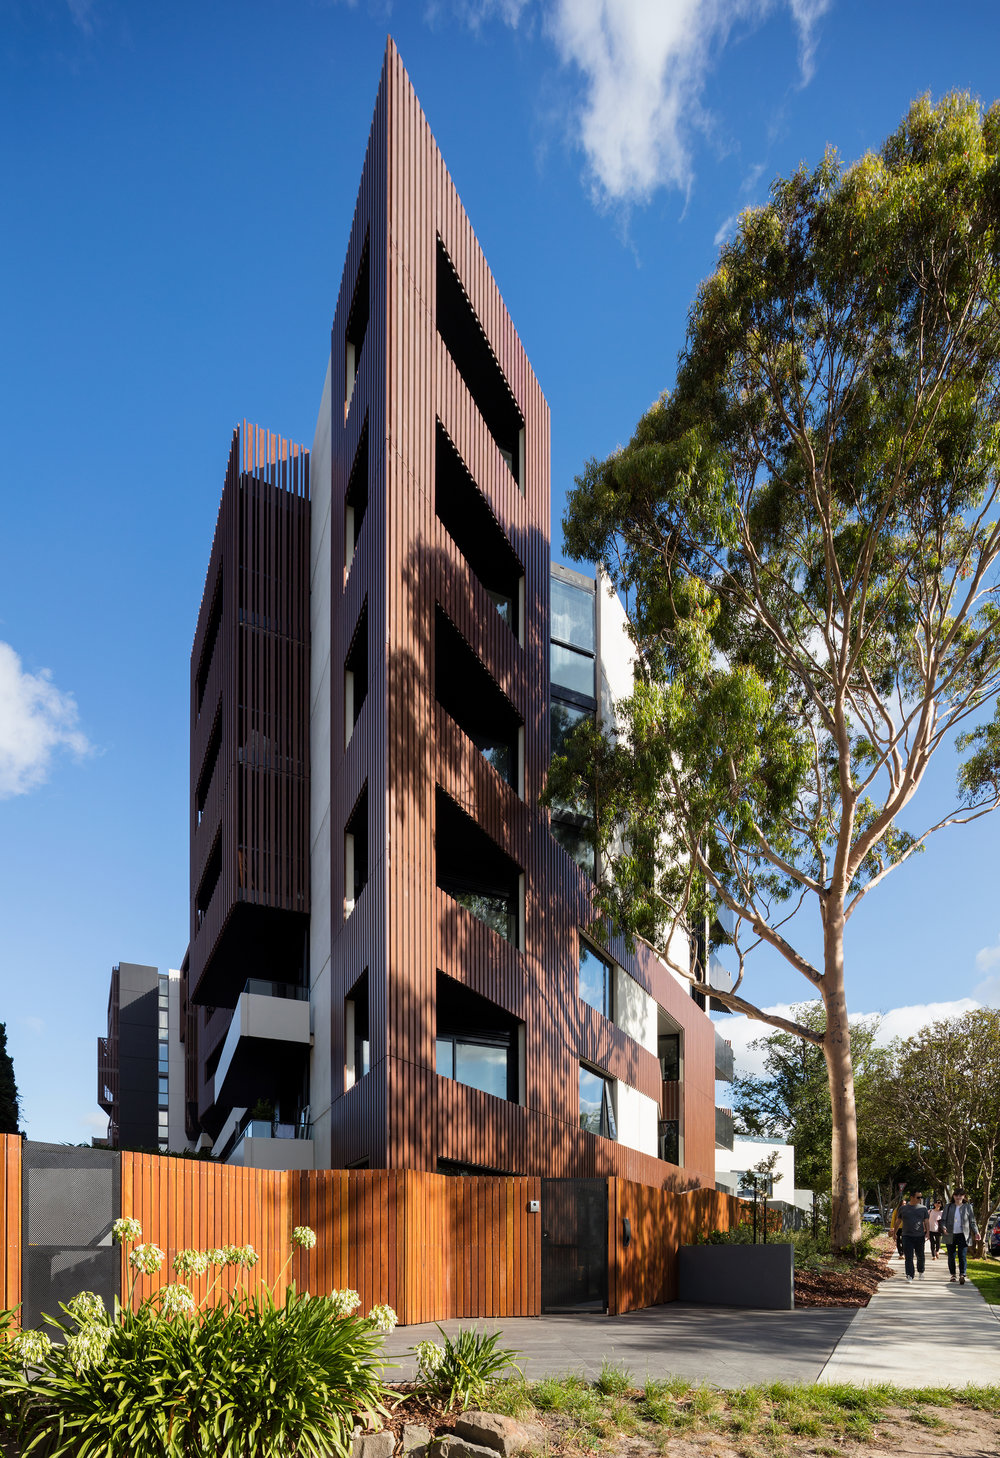 Evergreen Apartments, Ivanhoe